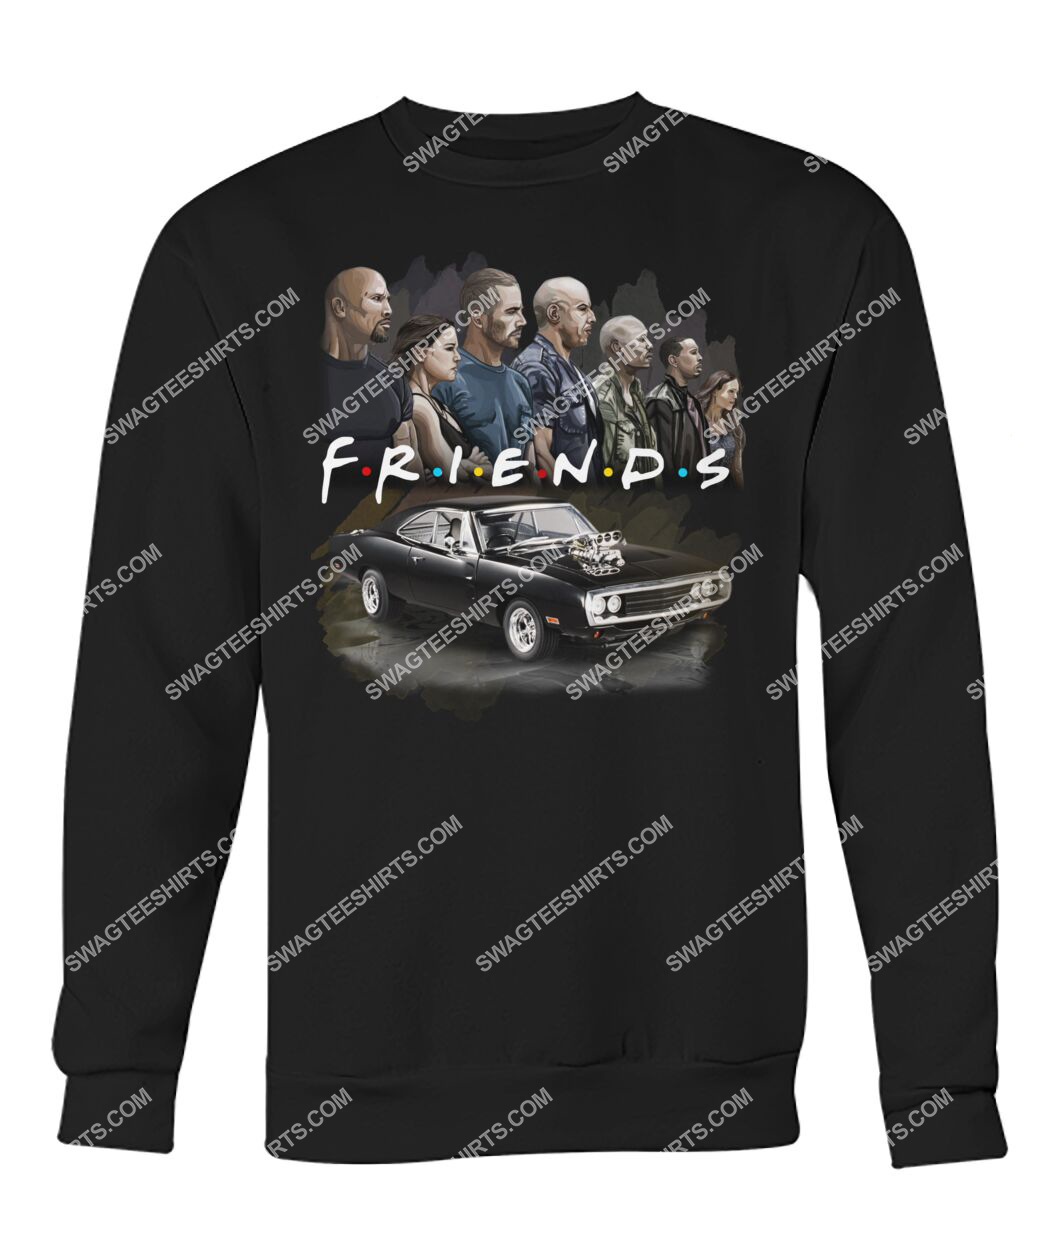 friends tv show fast and furious characters sweatshirt 1